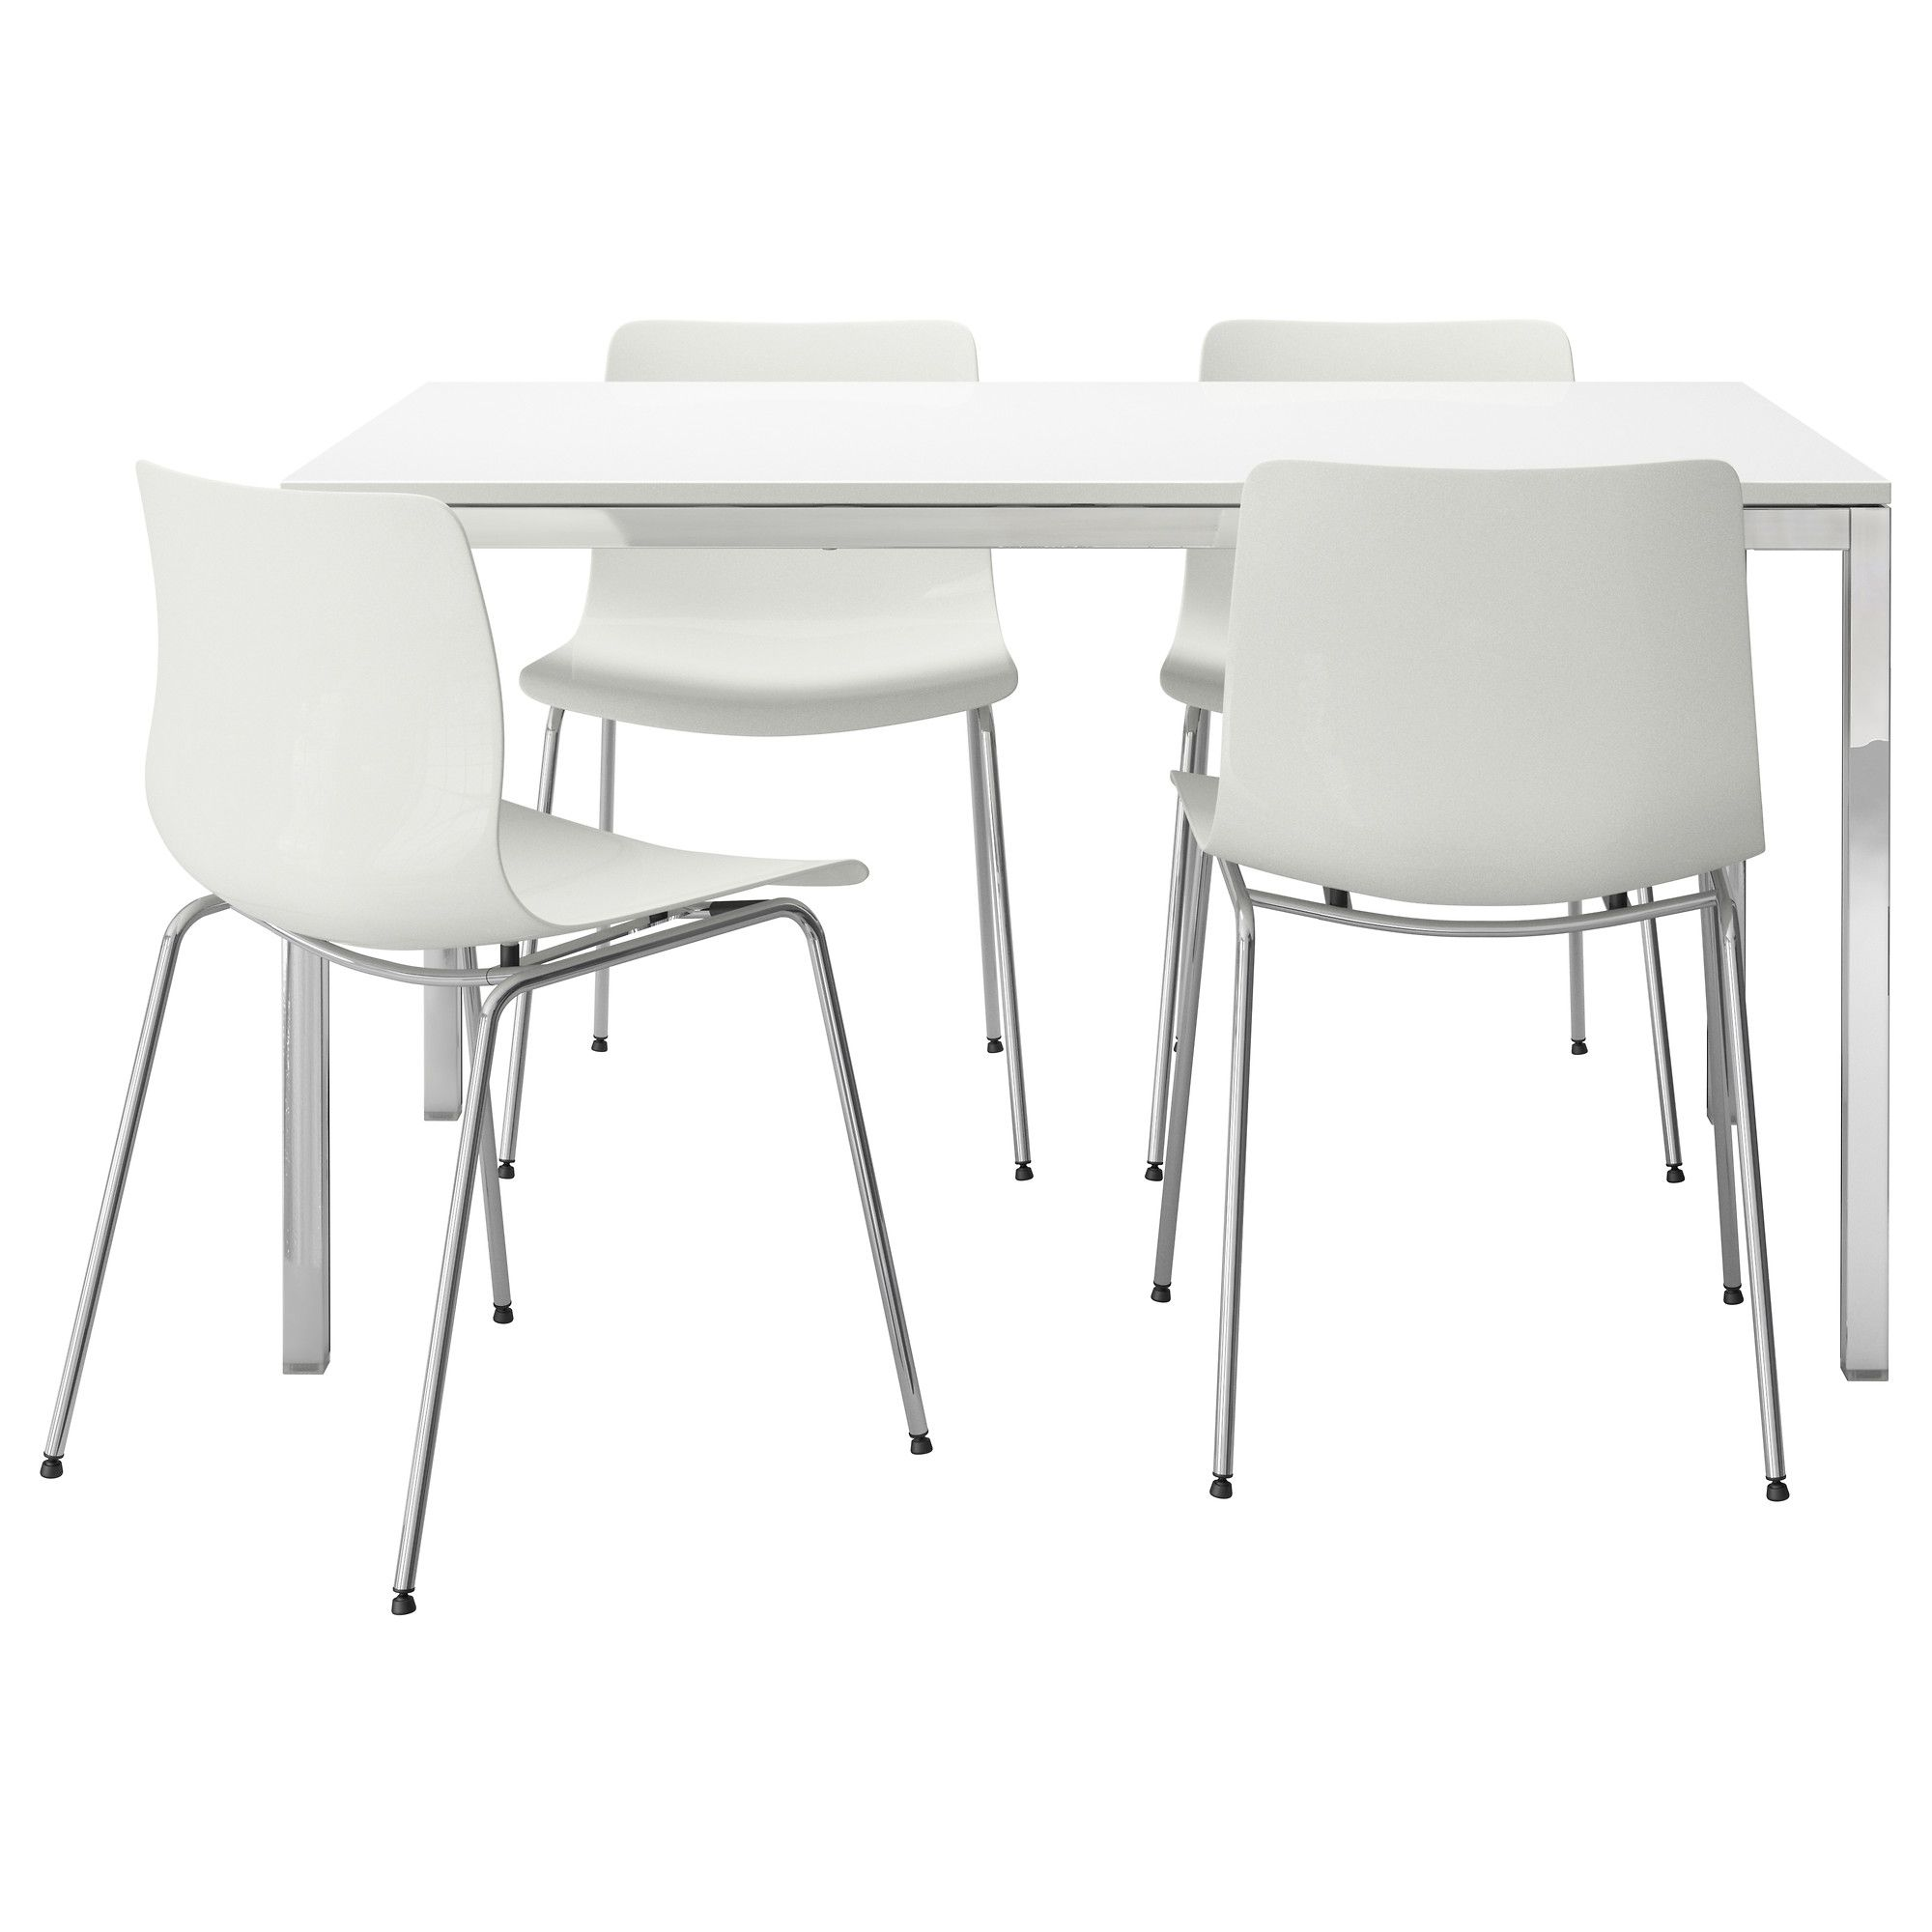 kitchen dining chairs IKEA Glass clear glass